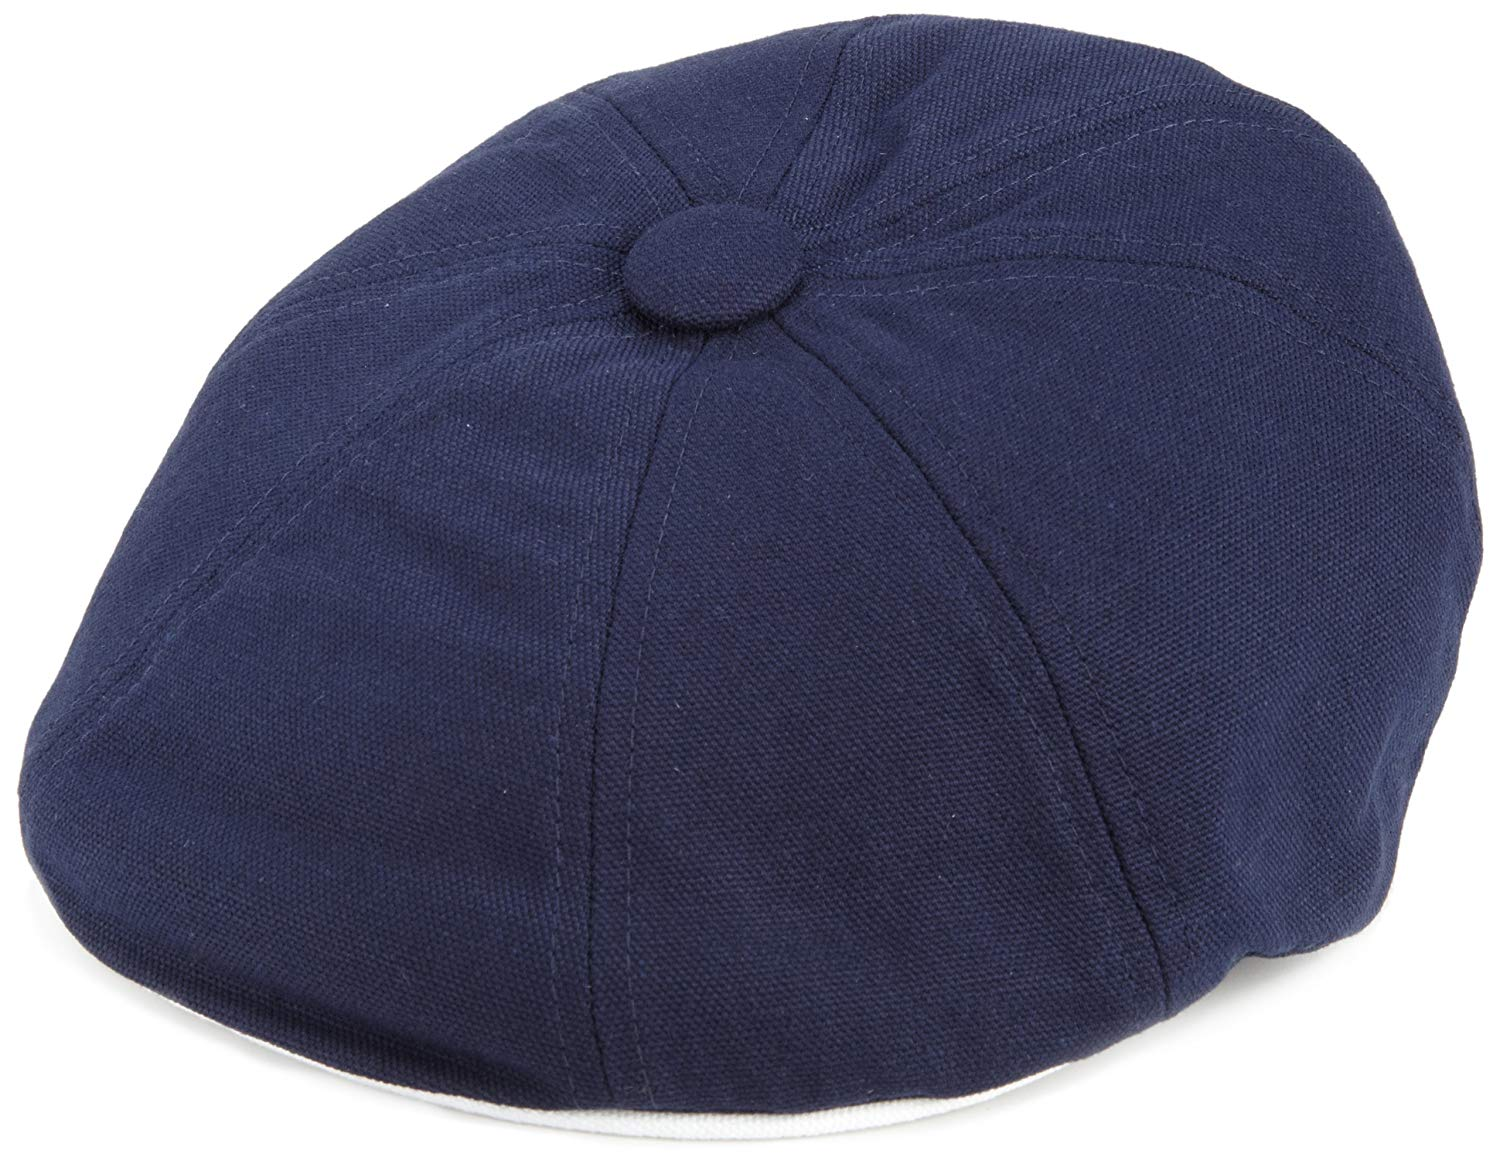 7f6a3fc3 Get Quotations · Kangol Little Boys' Kids Organic Canvas Galaxy Cap